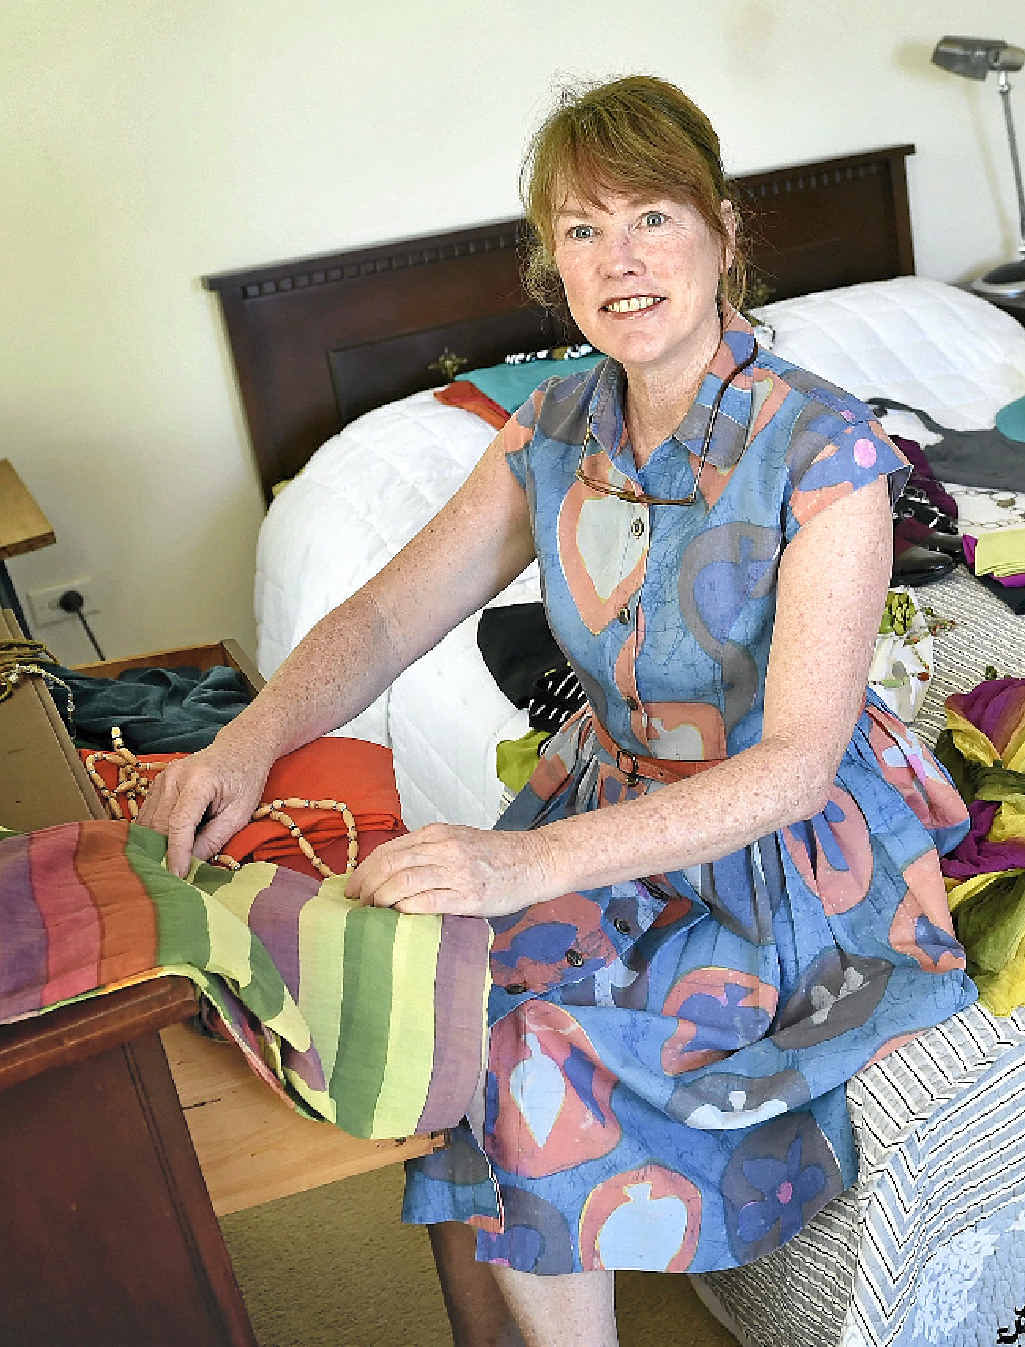 WARDROBE MAKEOVER: Wardrobe therapist Margaret Adam shares her tips for revamping your wardrobe for a New Year's resolution.